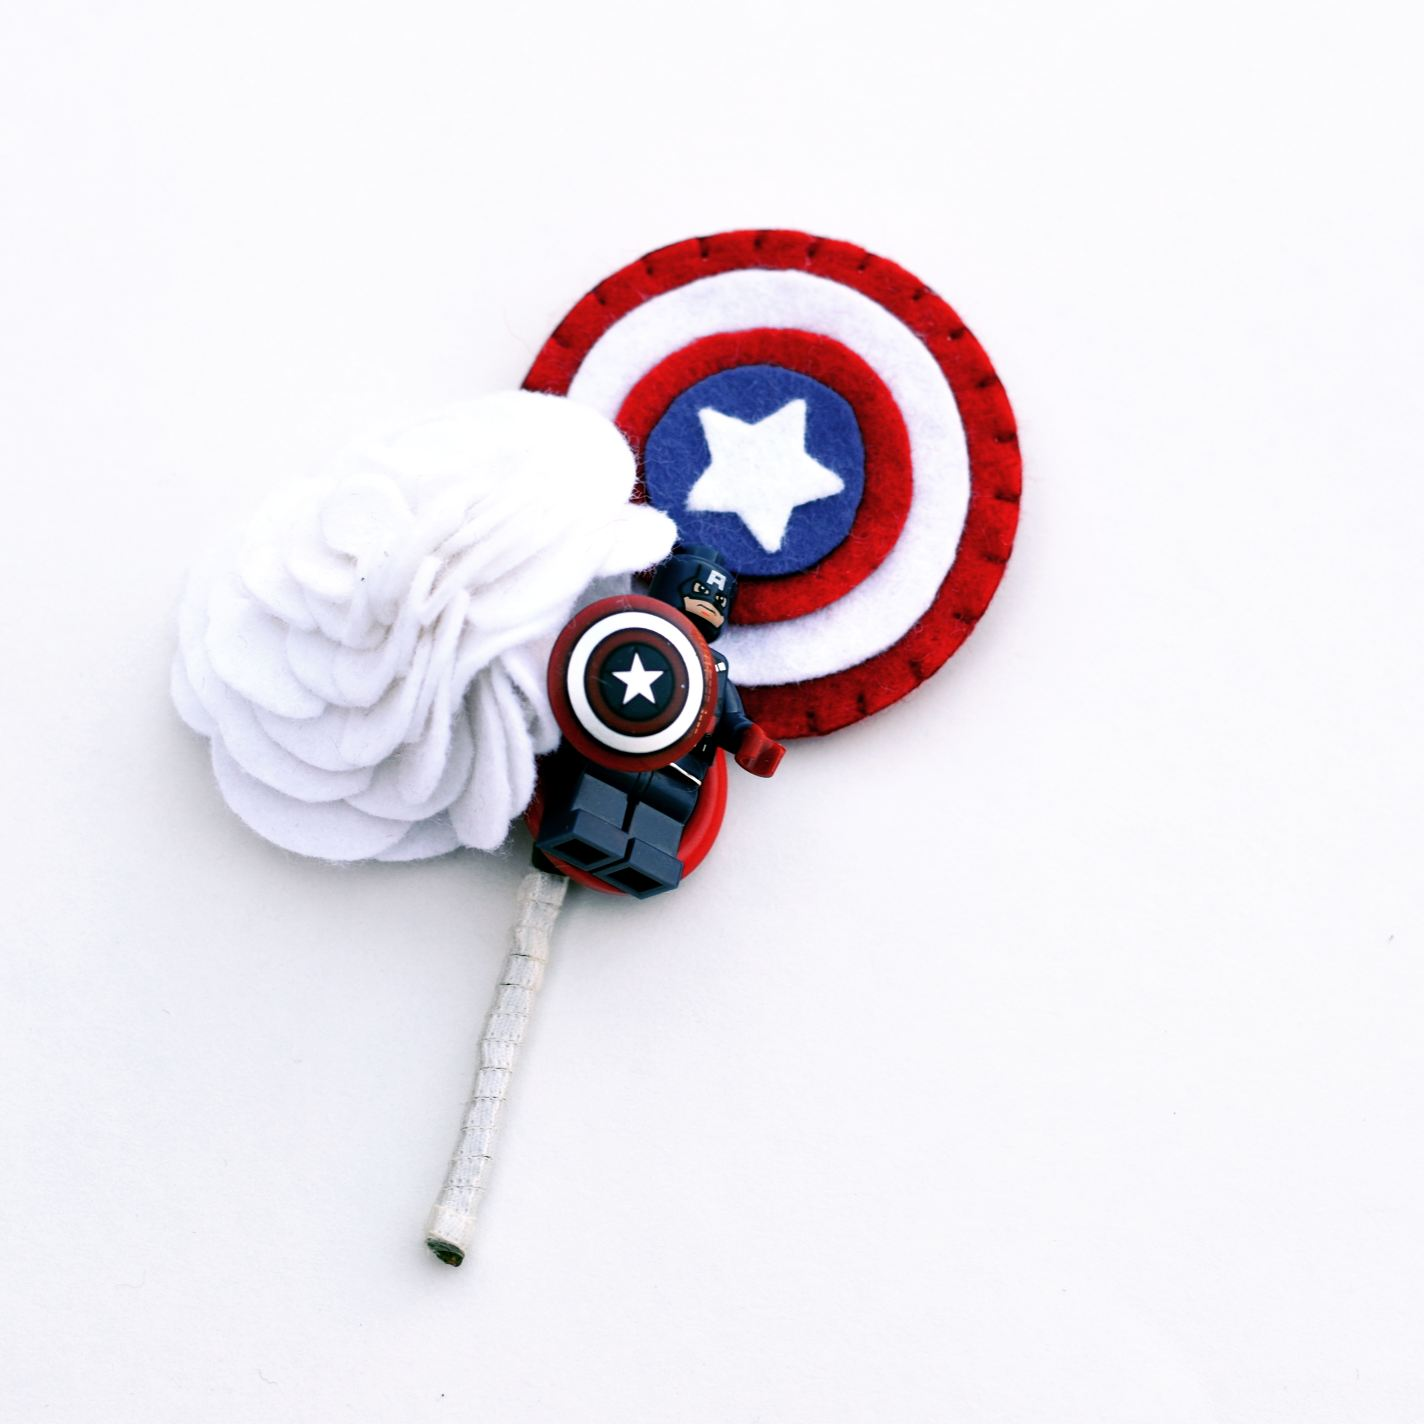 Photo by Charlotte Laurie designs - alternative wedding buttonhole - captain america button hole